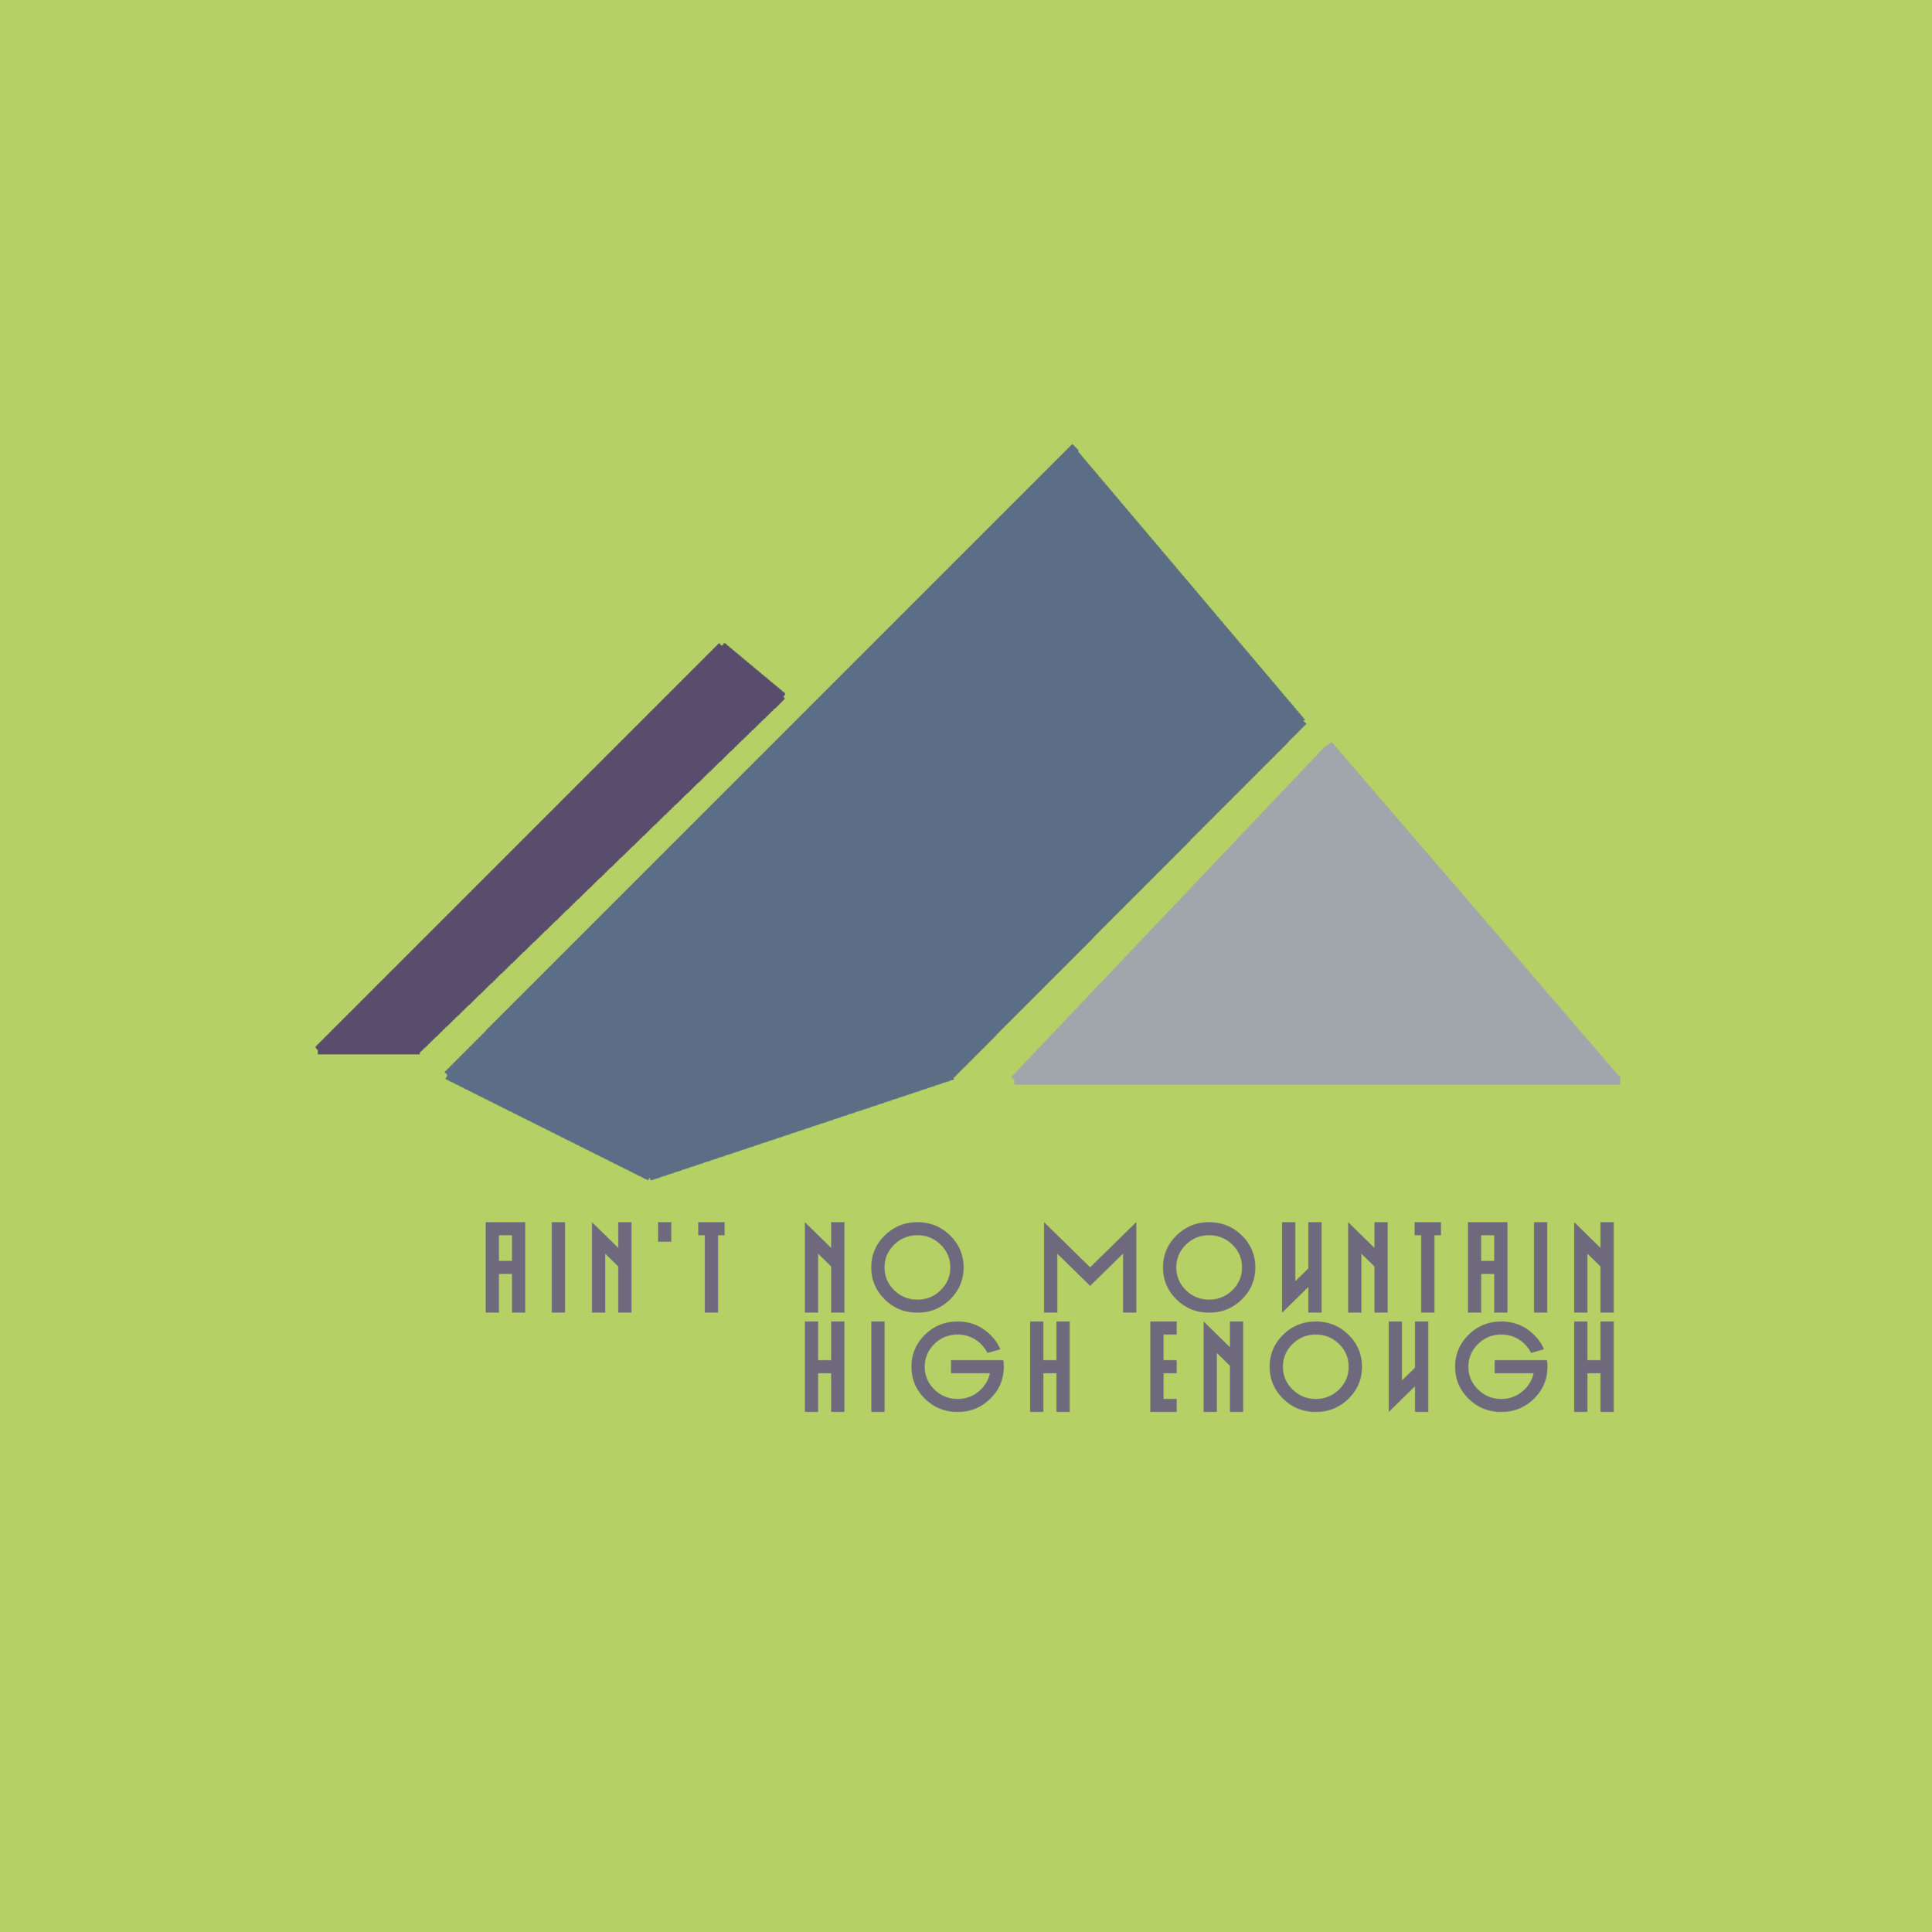 aint no mountain high enough.png